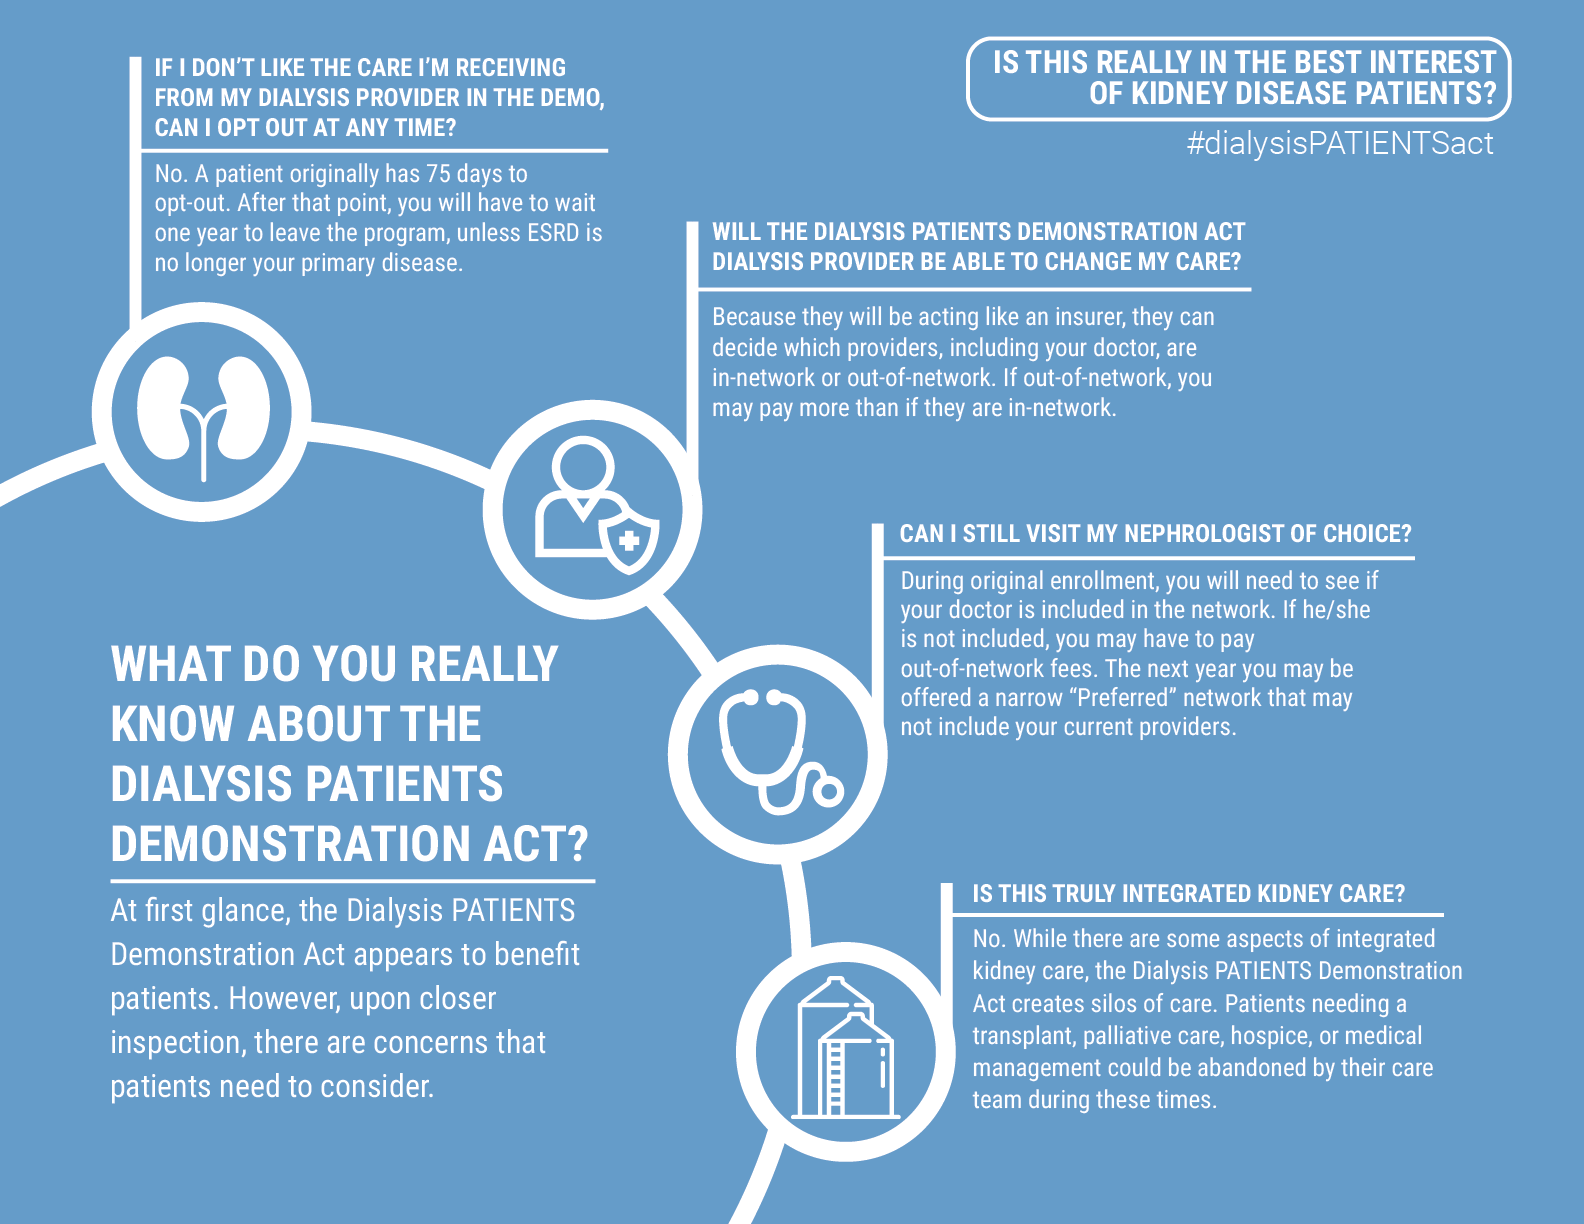 Dialysis_PATIENTS_Demonstration_Act